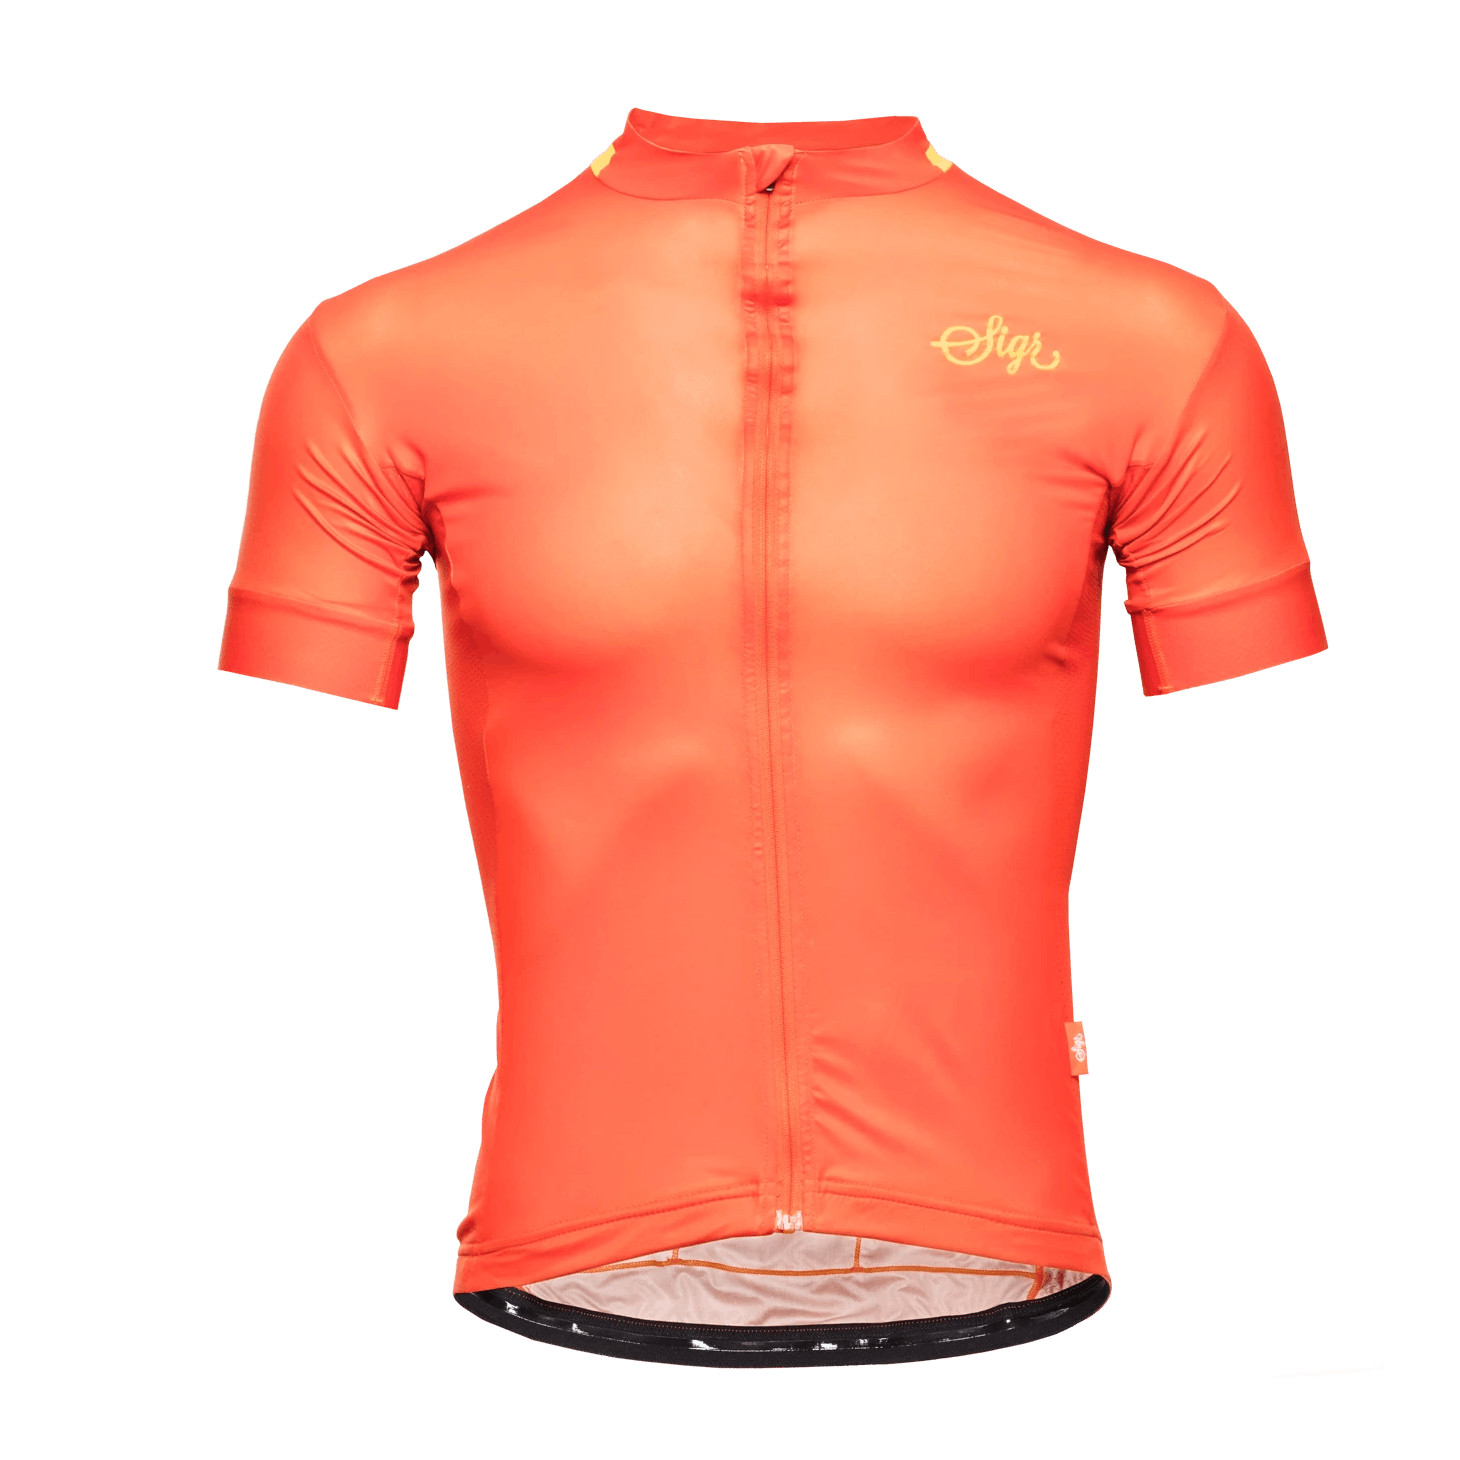 SIGR 'Havtorn' Orange Jersey for Men